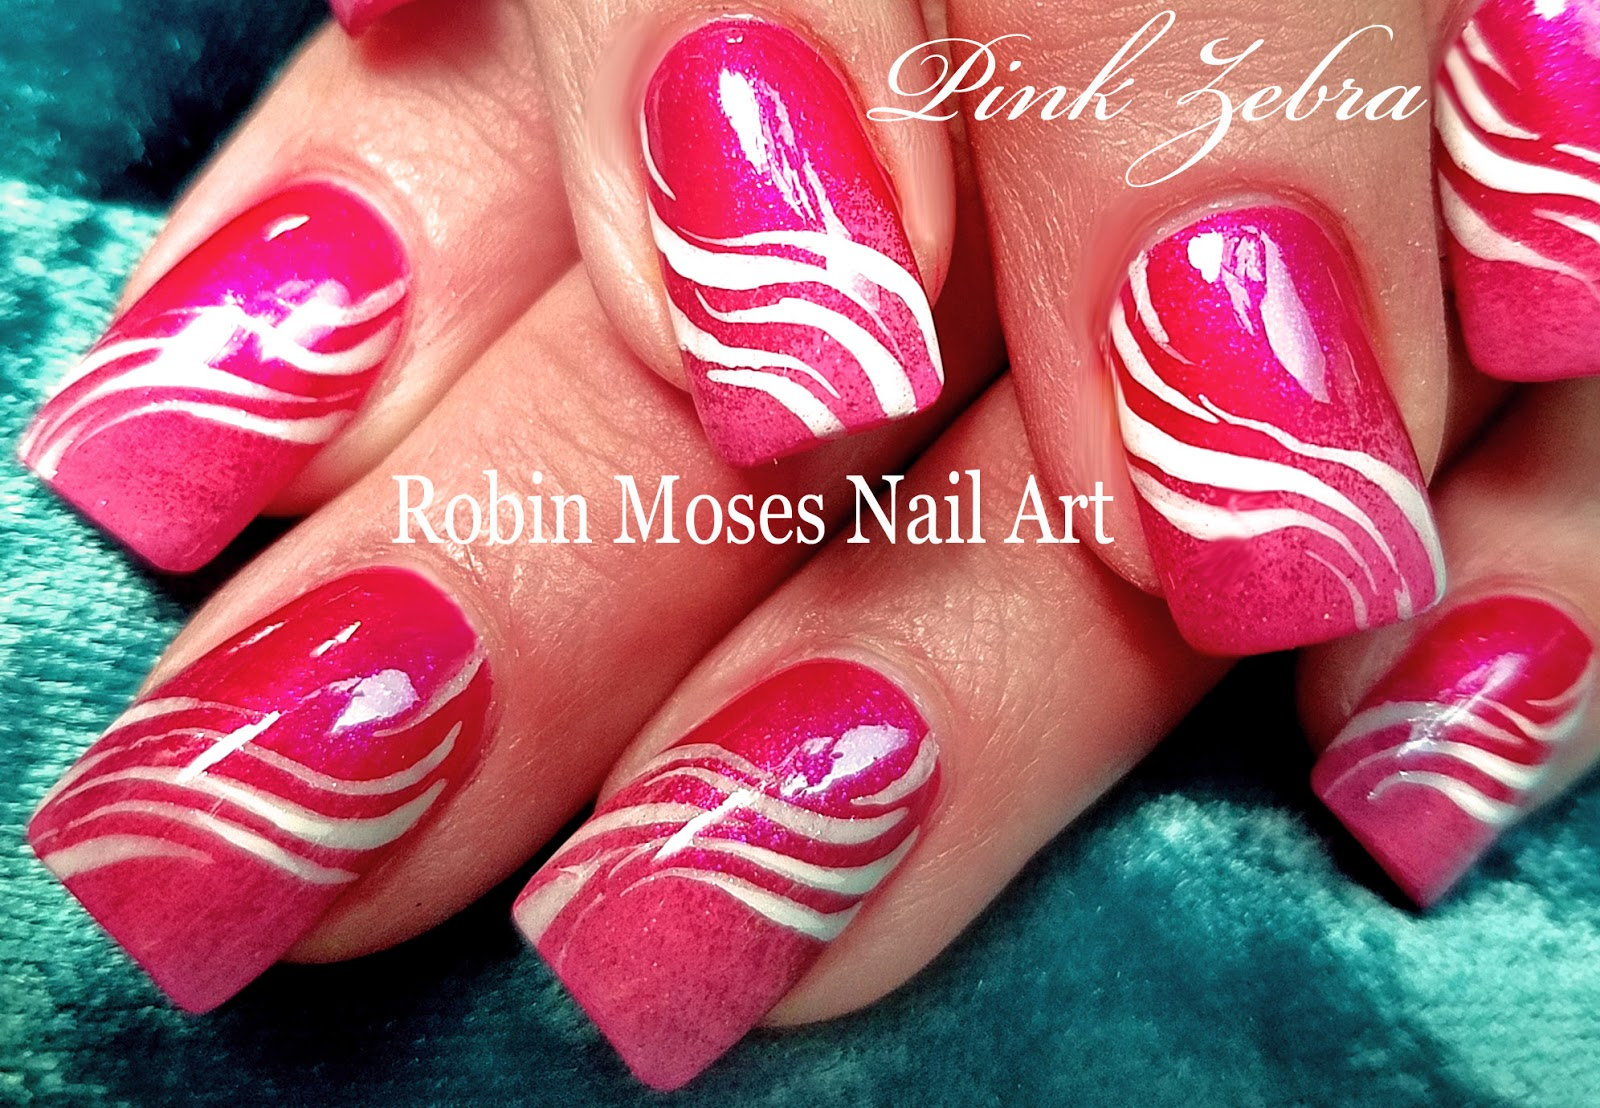 Nail Art by Robin Moses: White Zebra Print on Pink Polish with Light ...